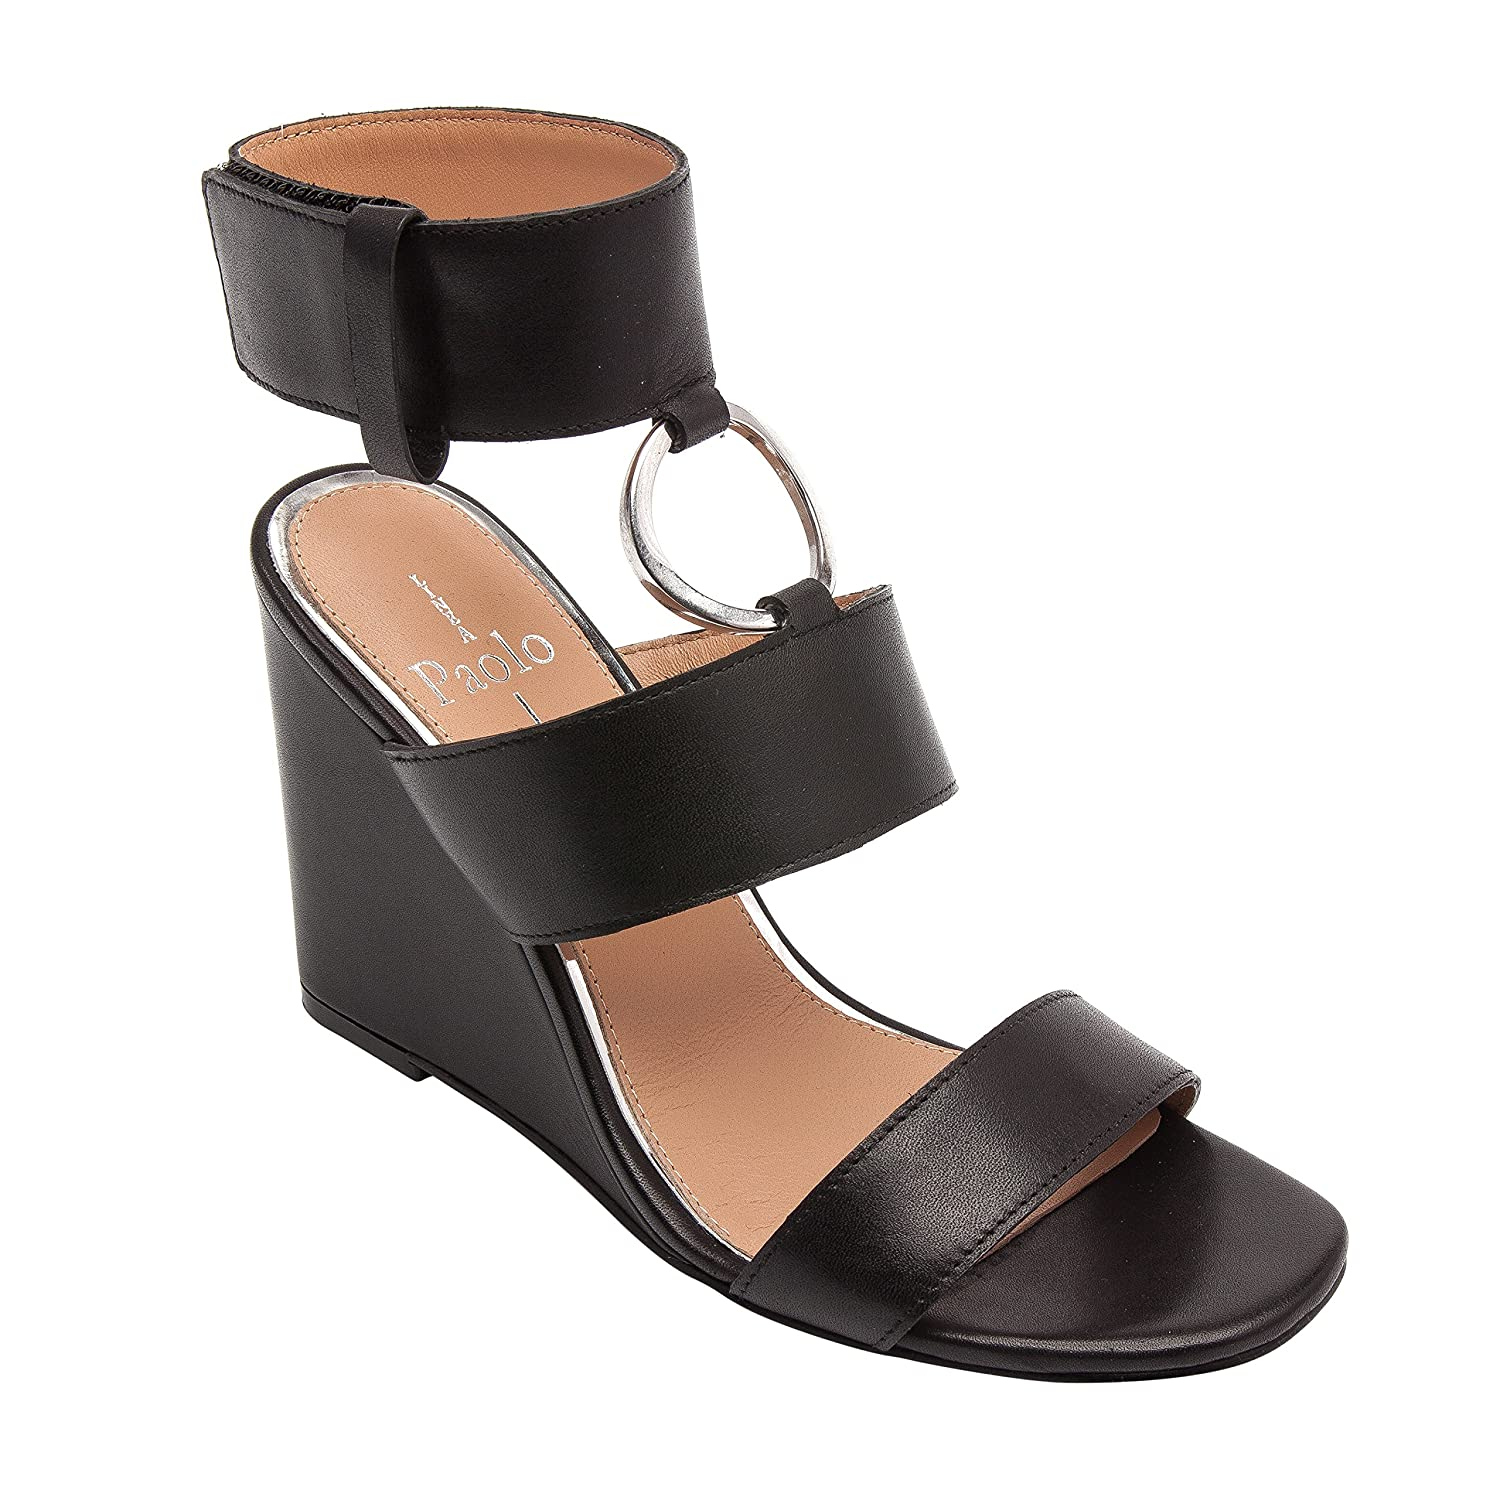 Linea Paolo EVA | Women's Metal Ring Adorned Cuffed Comfortable Wedge Sandal B079586DXM 9 M US|Black Leather